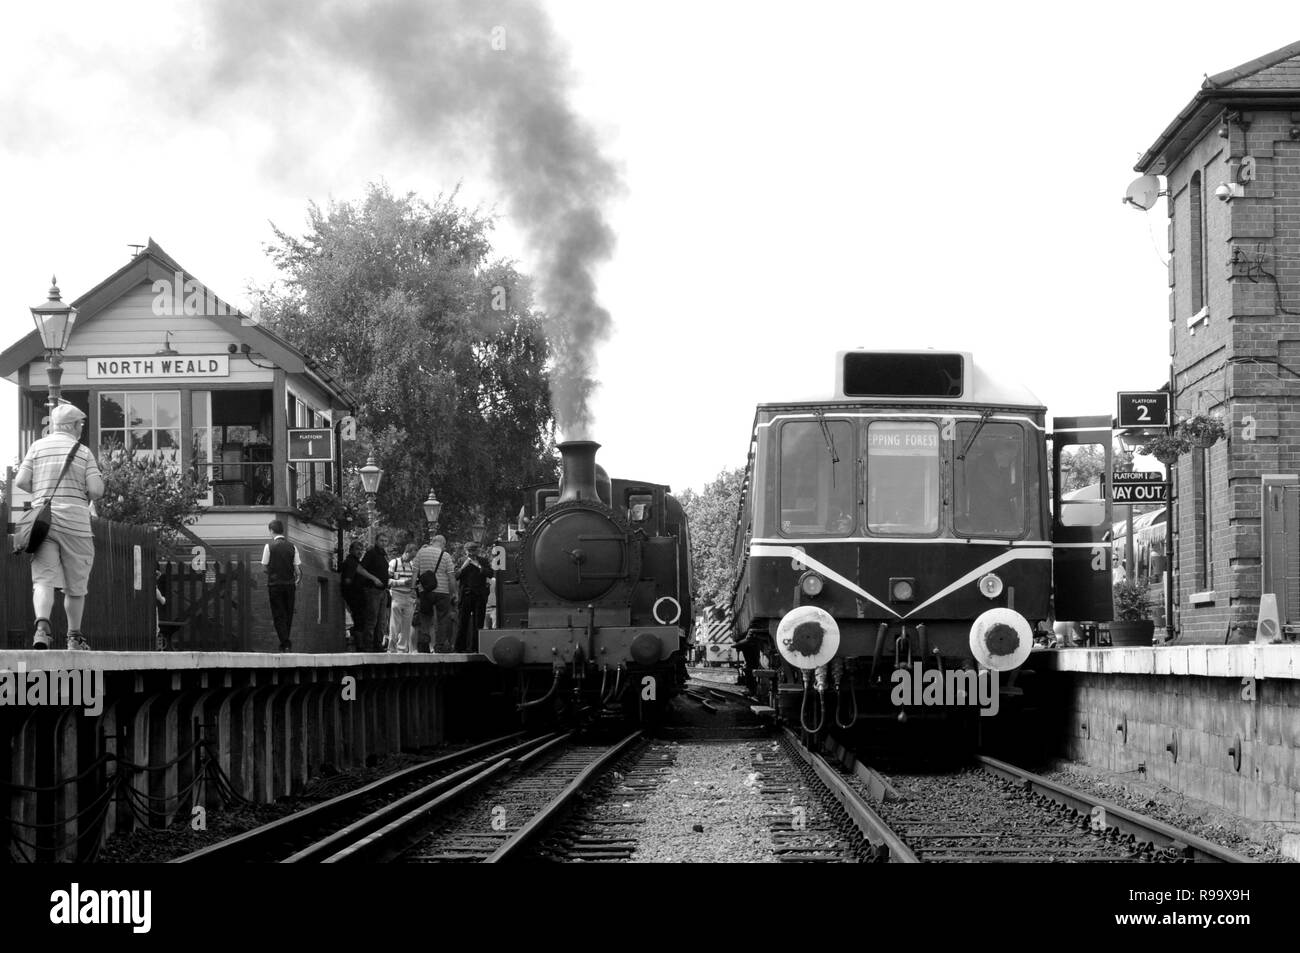 1898 Metropolitan Railway E Class 'Metropolitan Railway No.1' (l) and Class 117 DMU M51384 (r) at North Weald Station, Epping Ongar Railway, Essex, UK. - Stock Image